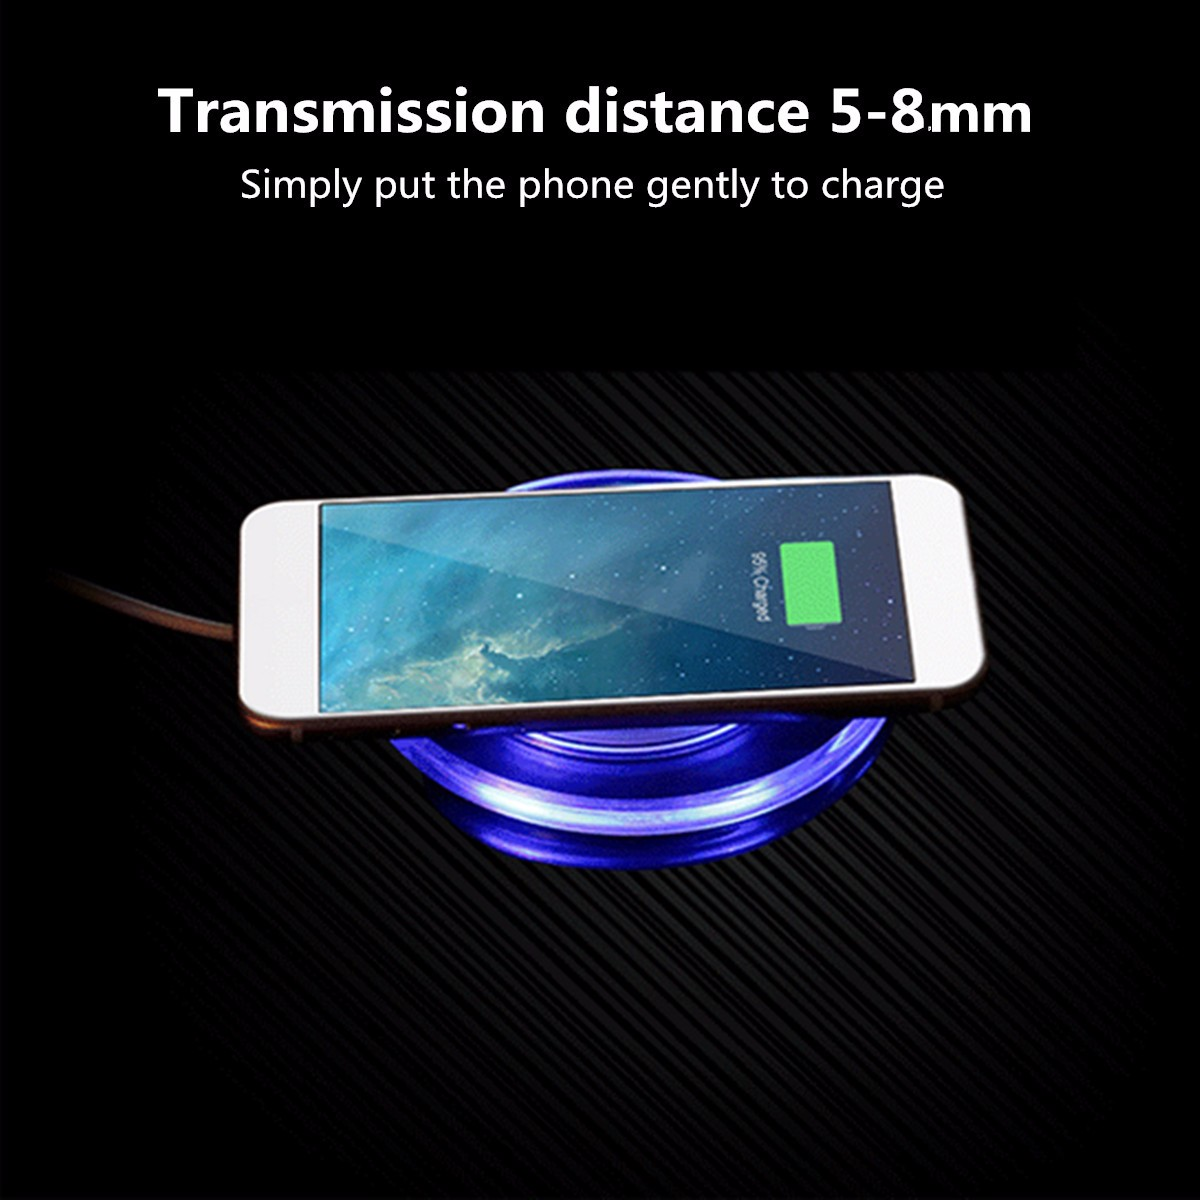 Qi Wireless Fast Charger Charging Pad Plate For Samsung Galaxy S6 S7 edge+ Note 5